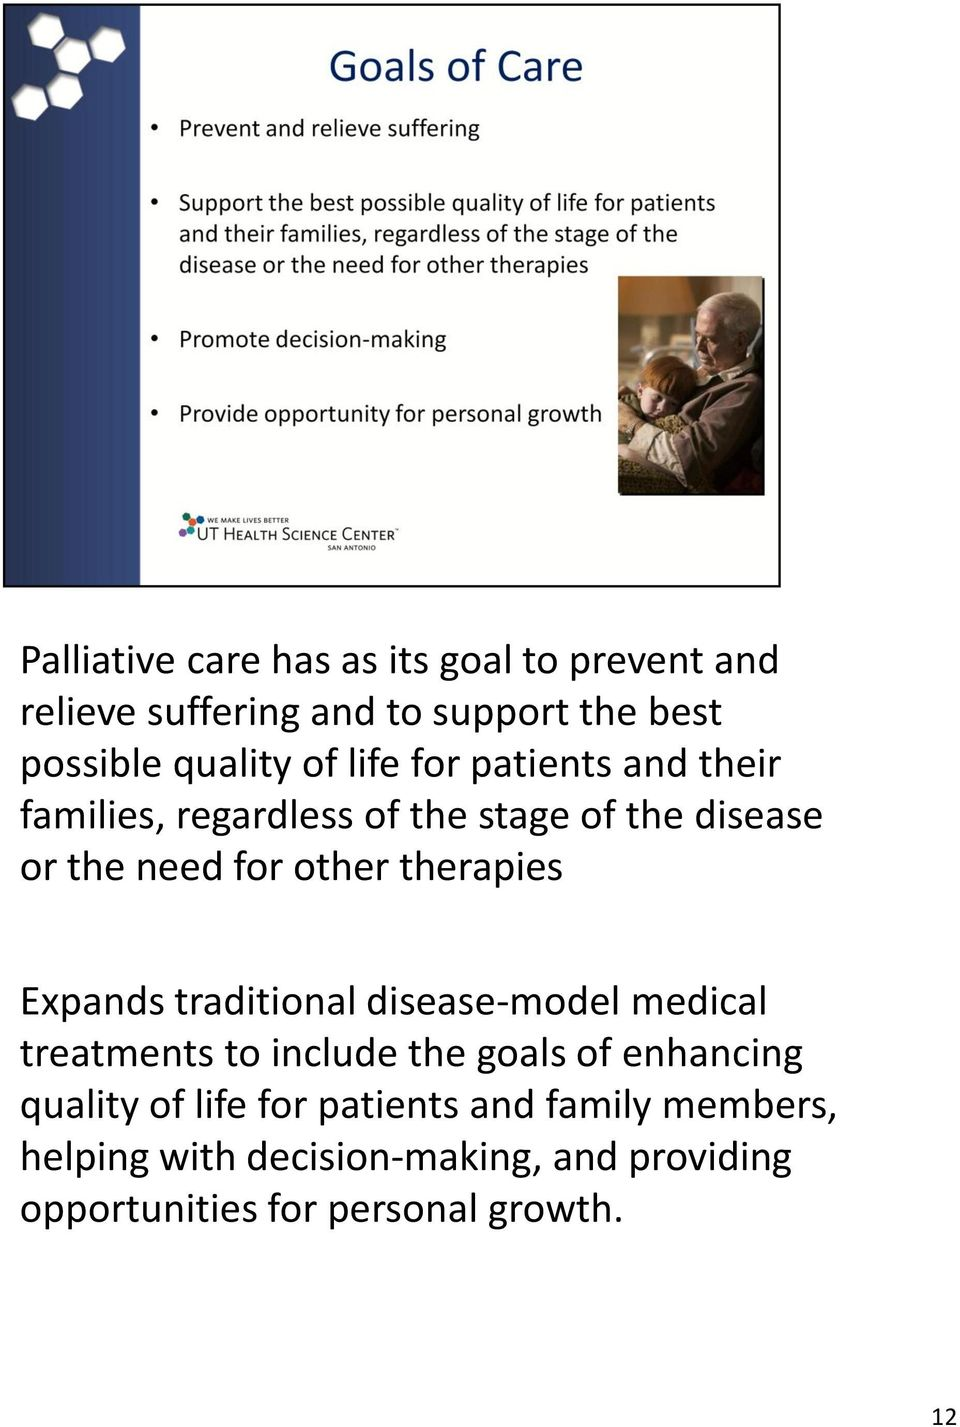 Expands traditional disease-model medical treatments to include the goals of enhancing quality of life for